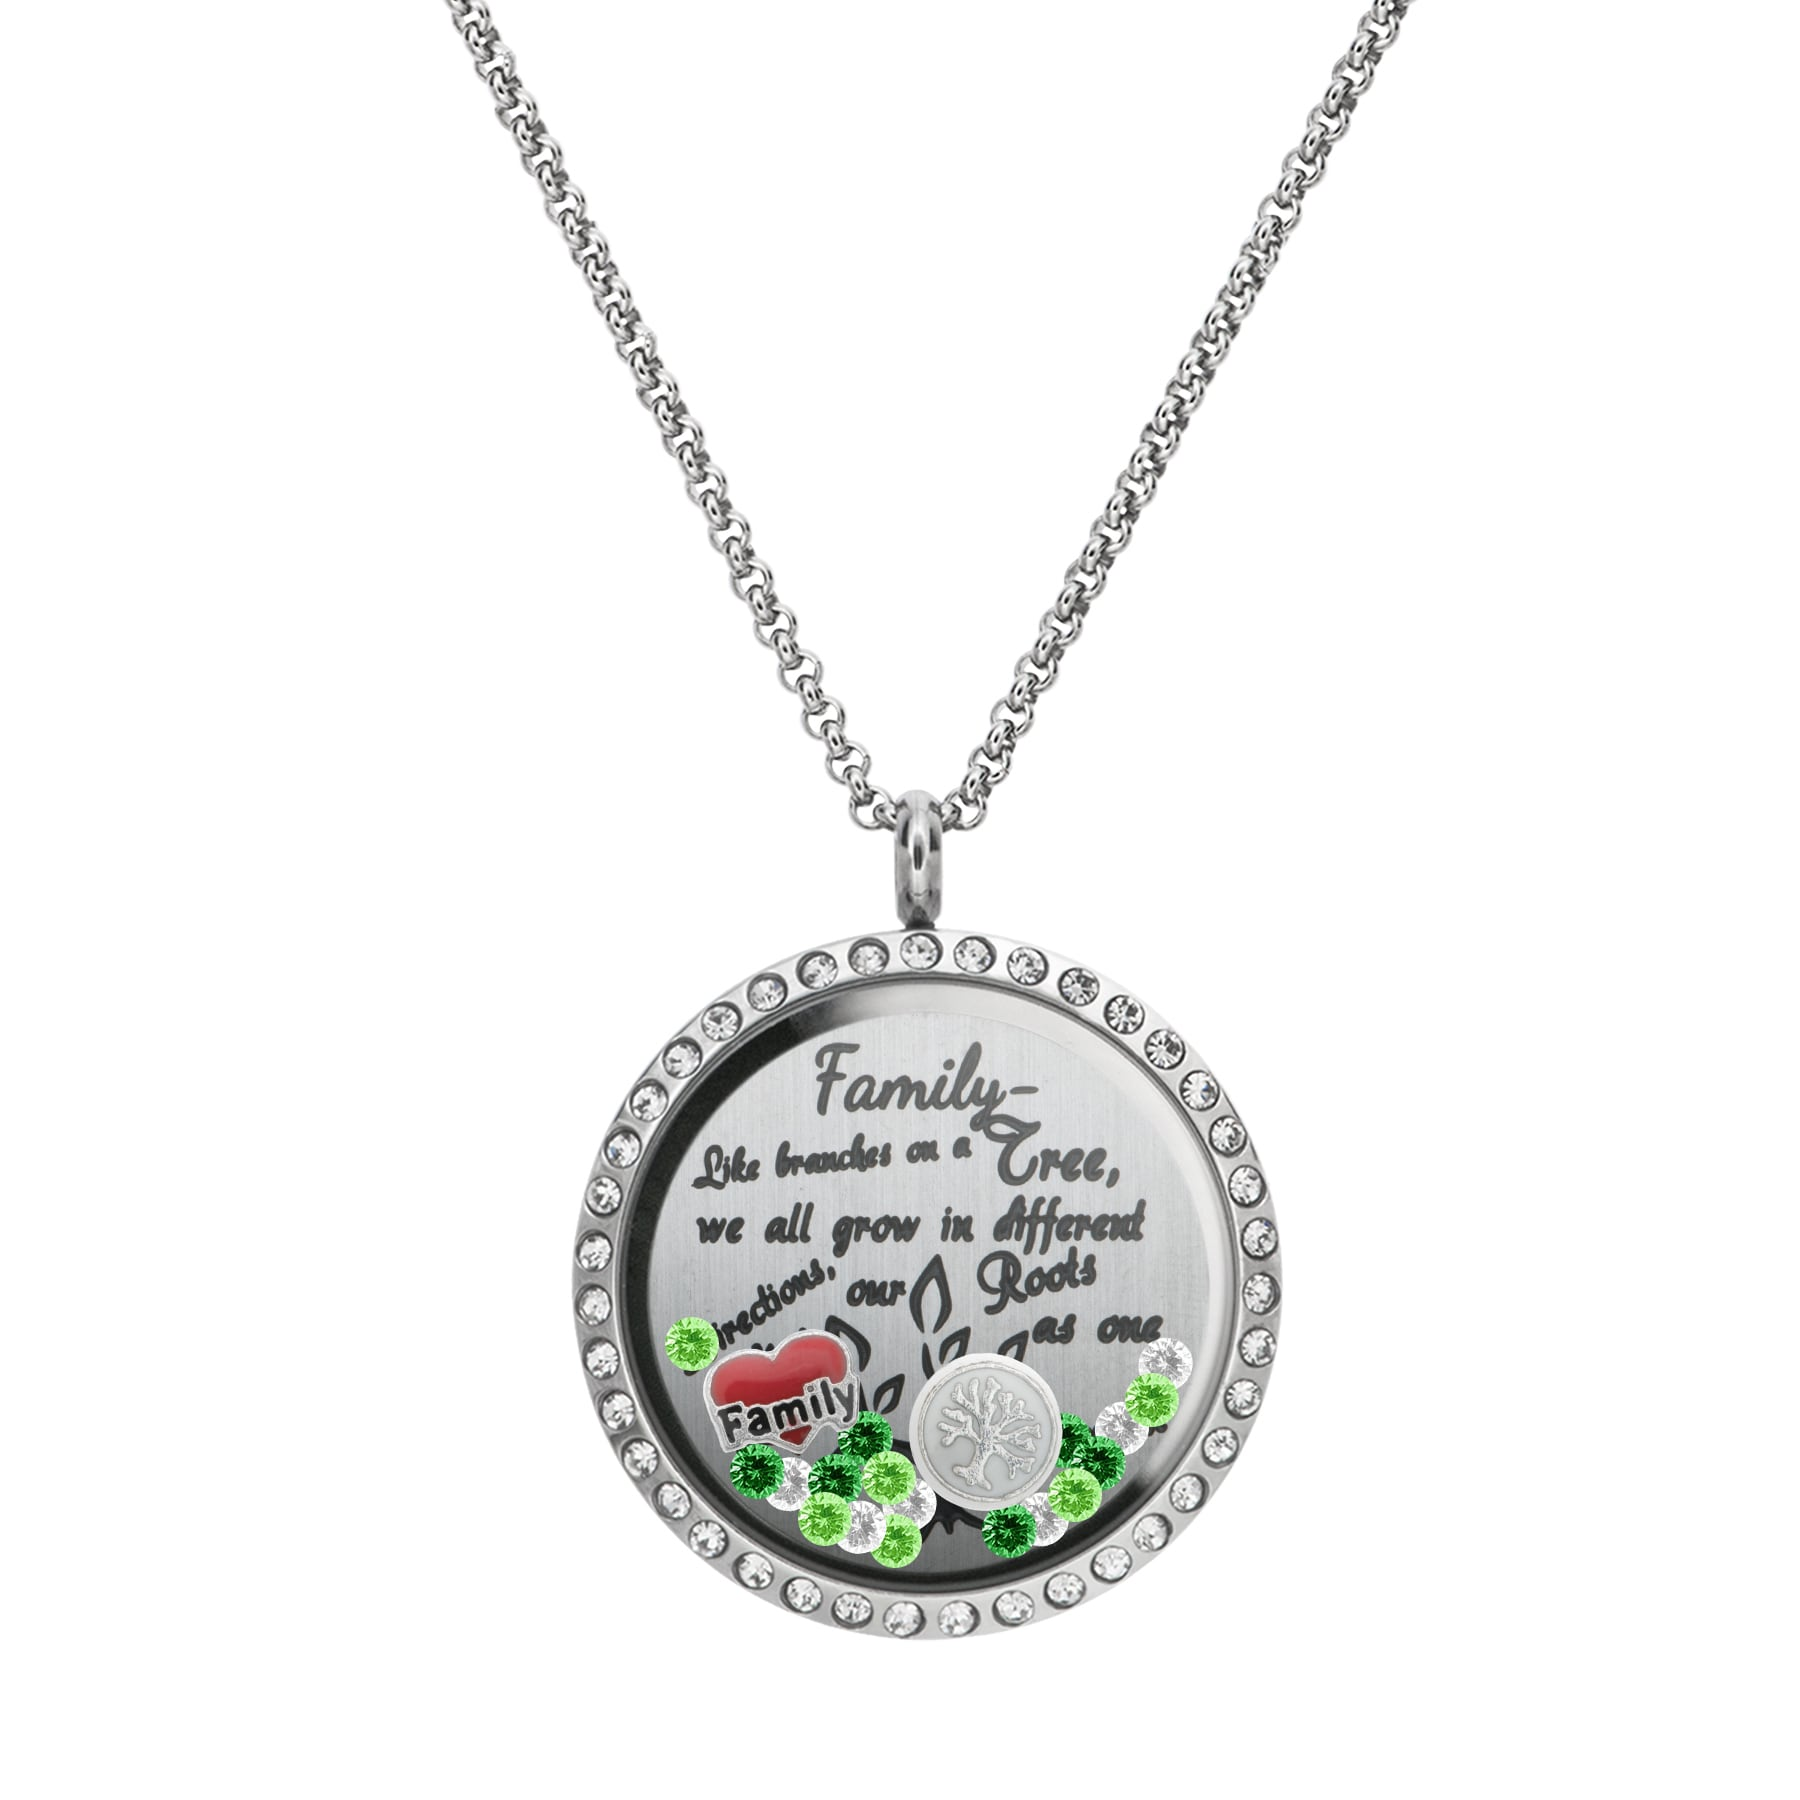 orig jewelry cute charm necklace hill lockets floating picture glass designs south